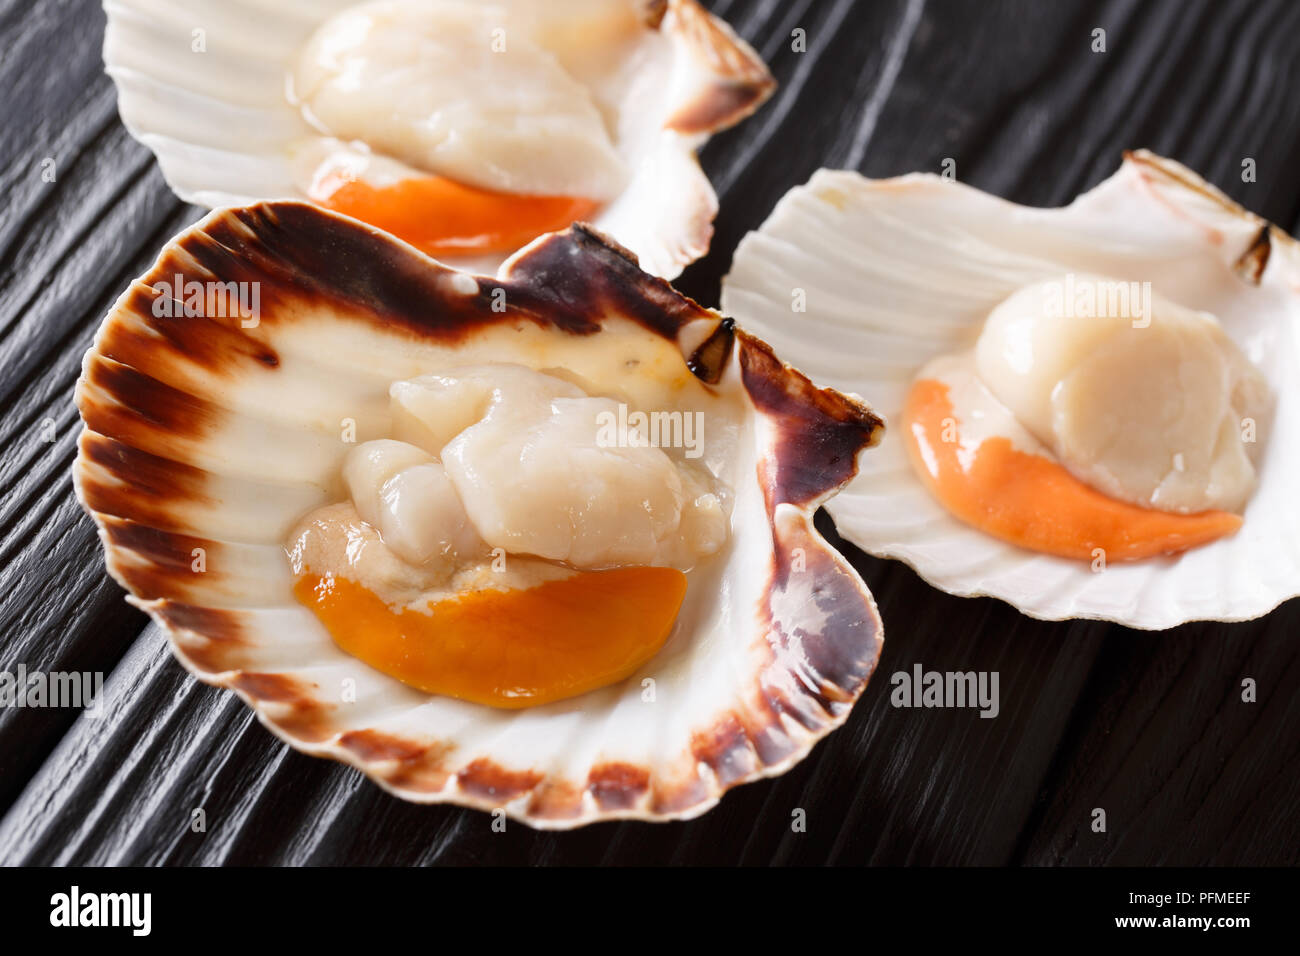 Seafood background with fresh scallops in white and brown shells. Seafood delicacies. horizontal format - Stock Image